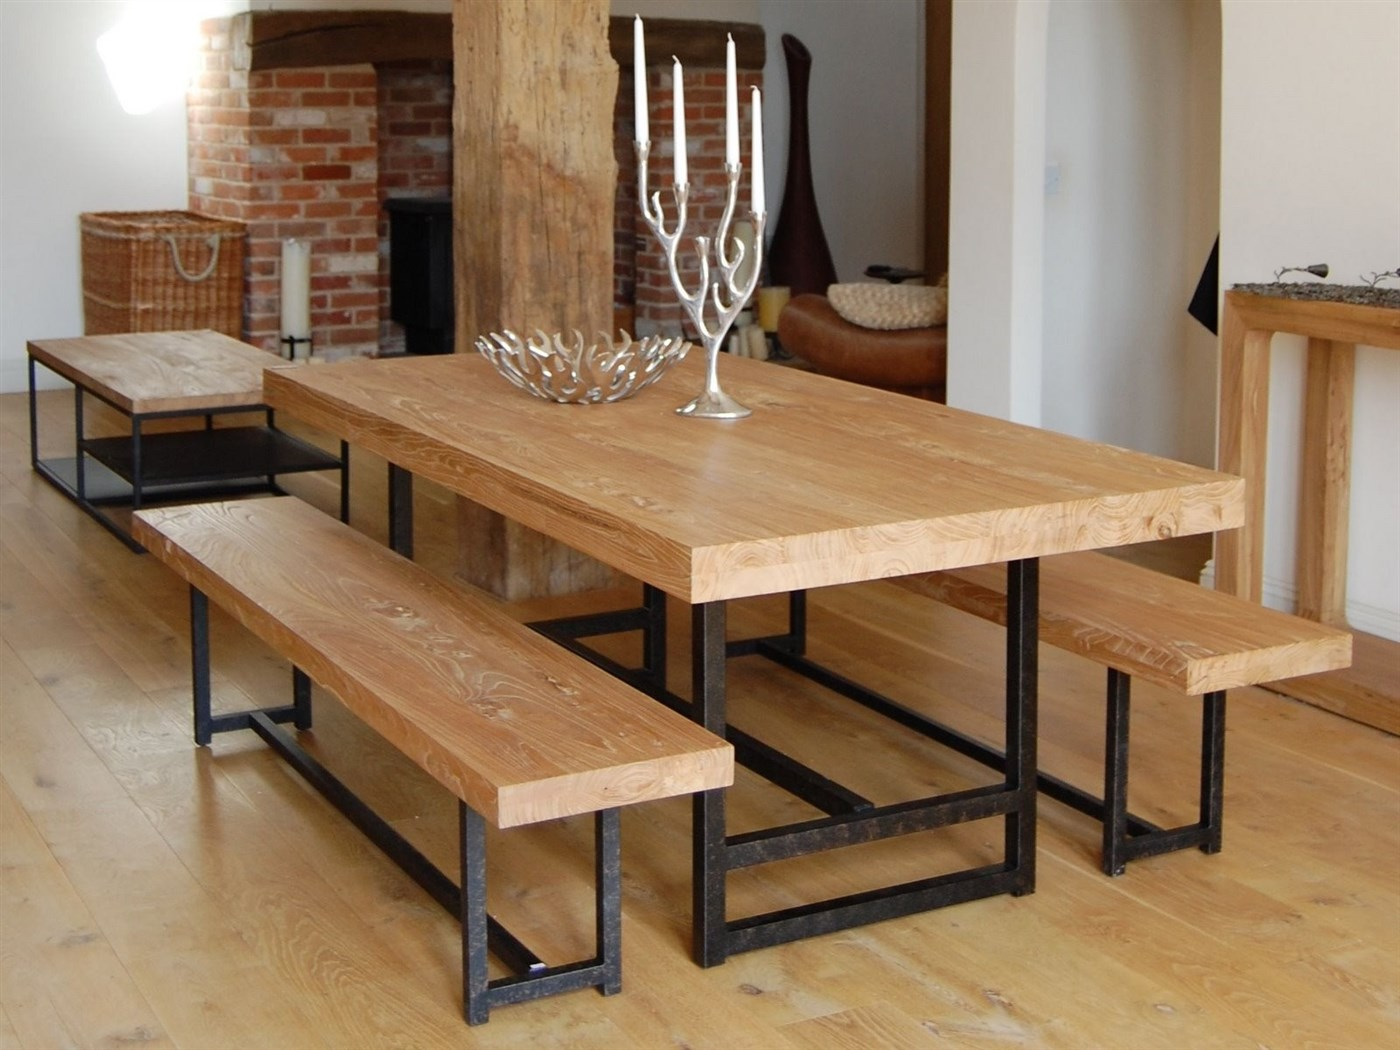 Wood dining table design ideas